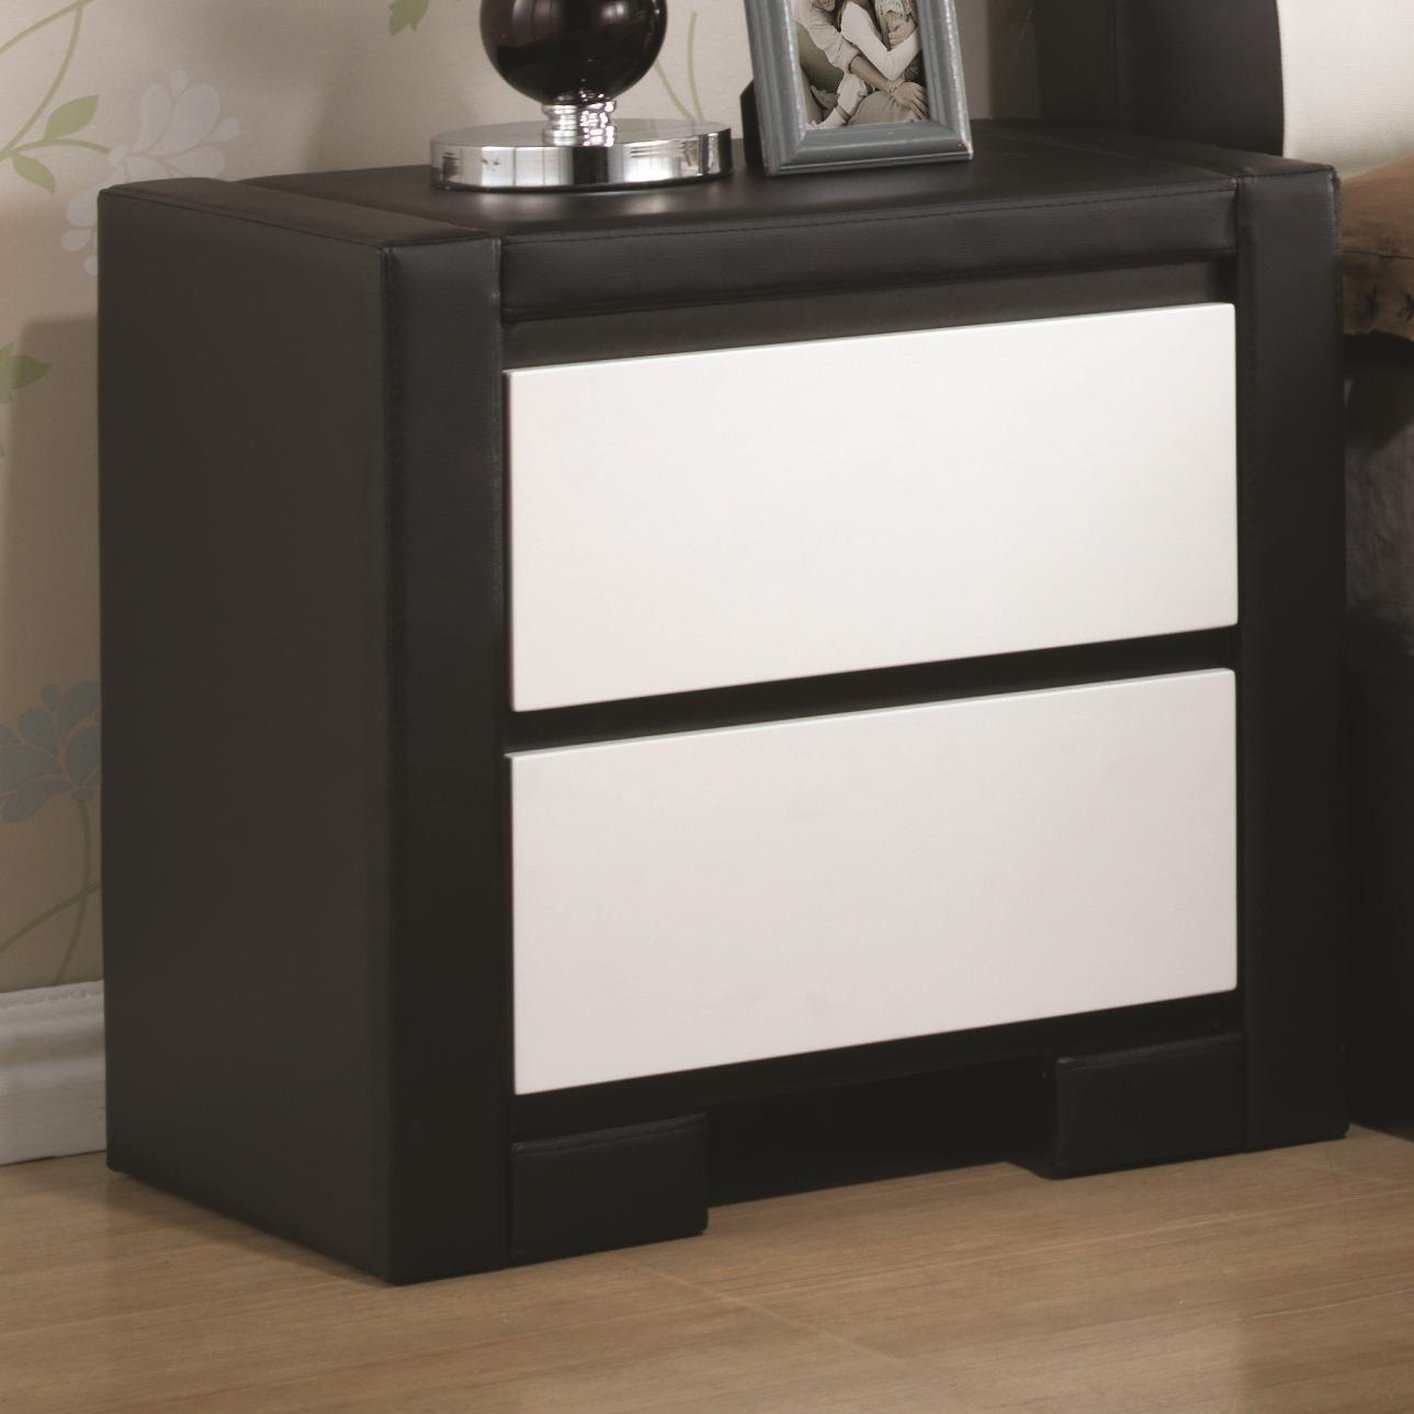 Black Leather Nightstand Steal A Sofa Furniture Outlet Los